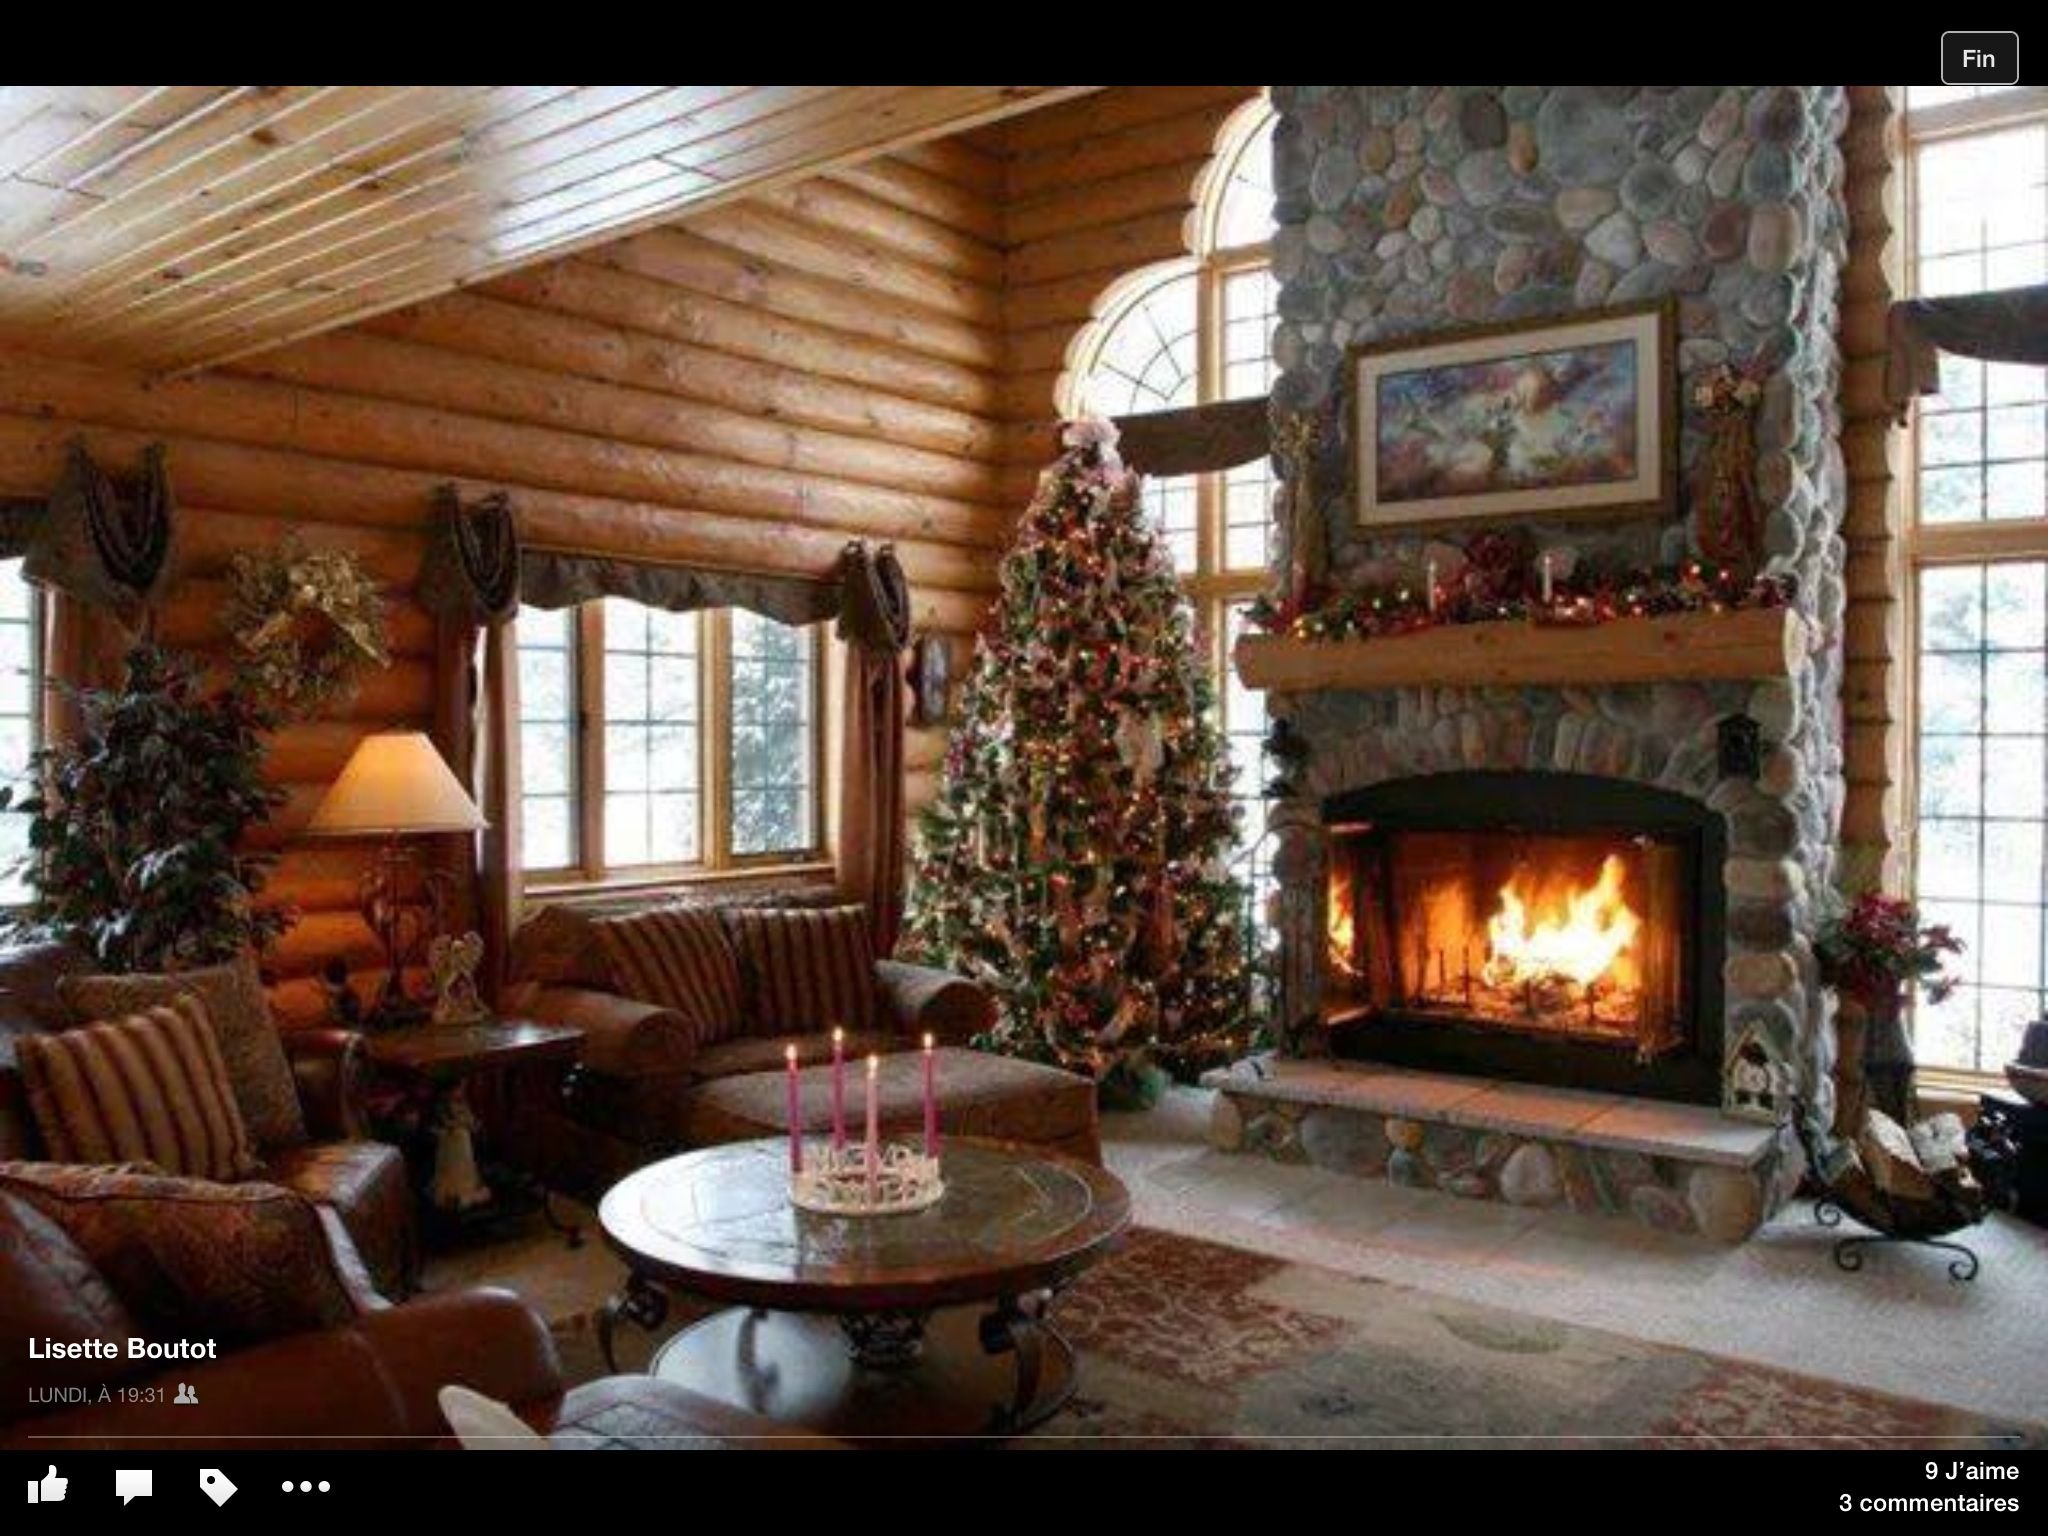 Decoration Noel Interieur Maison Decorations Noel Interieur Chalet Cabin Sweet Cabin